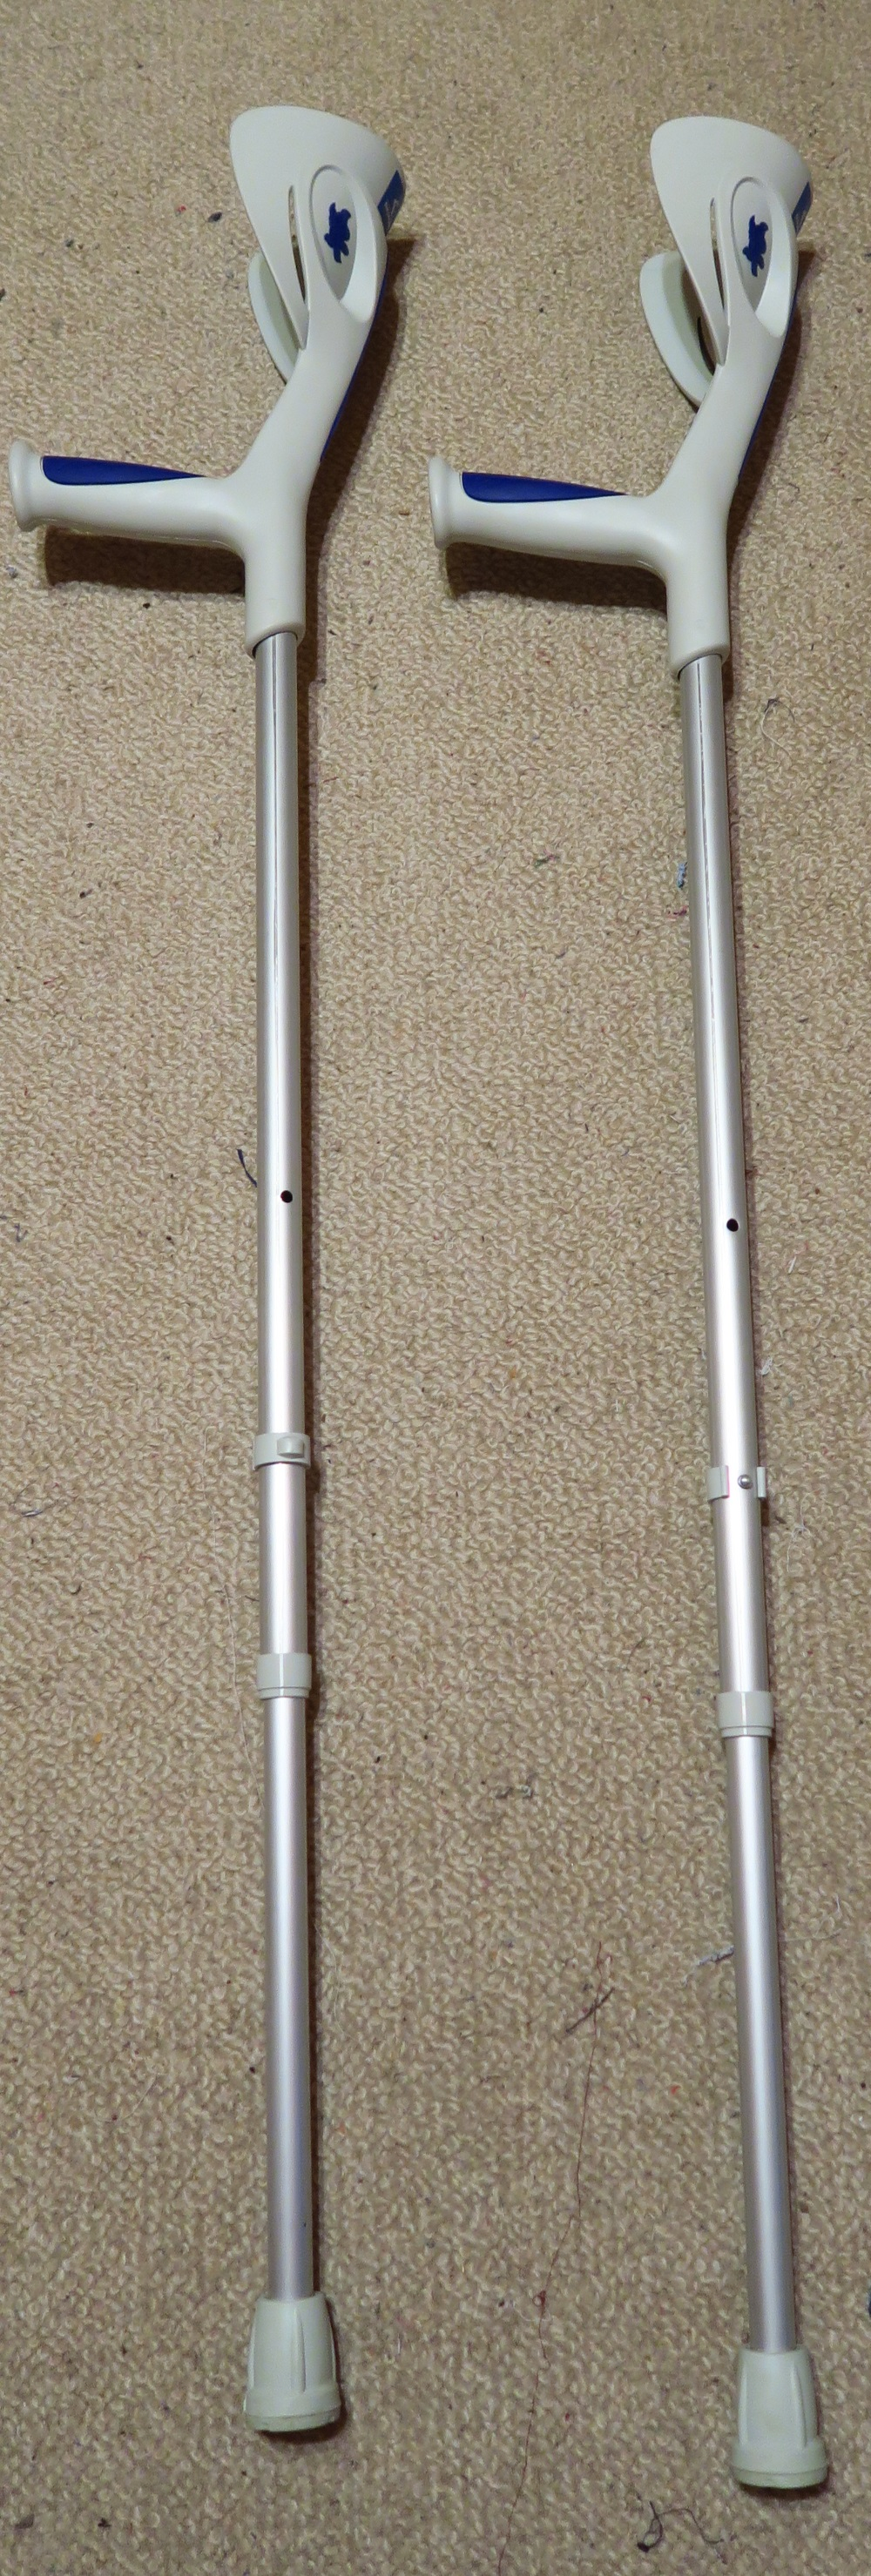 Typical crutches, Polish style